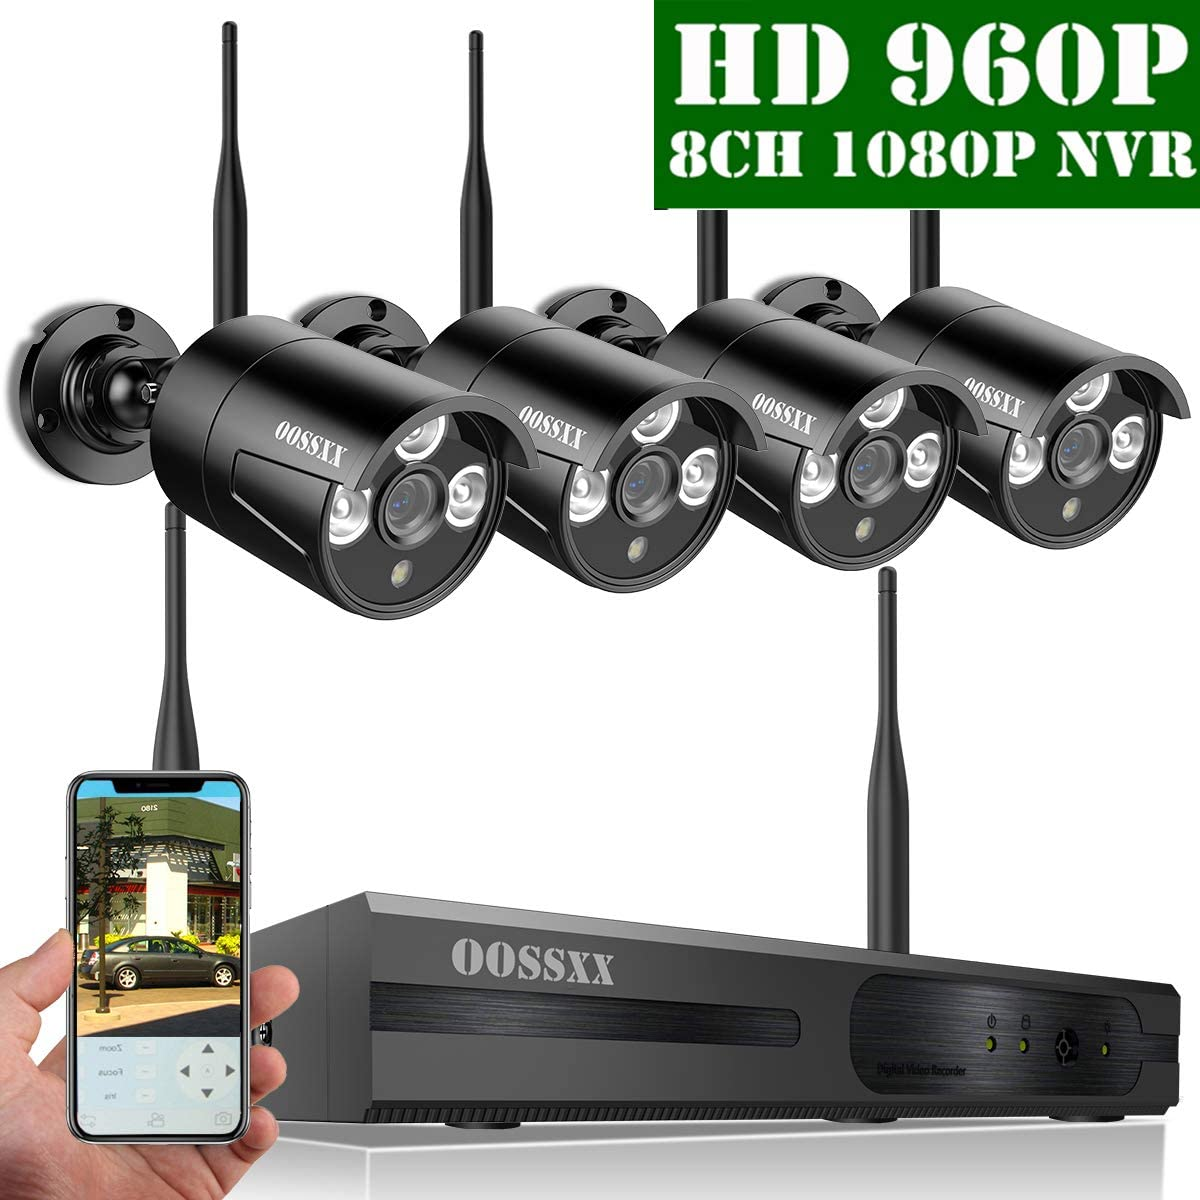 2019 Update OOSSXX HD 1080P 8-Channel Wireless Security Camera System,4 pcs 960P 1.3 Megapixel Wireless Weatherproof Bullet IP Cameras,Plug Play,70FT Night Vision,P2P,App, No Hard Drive